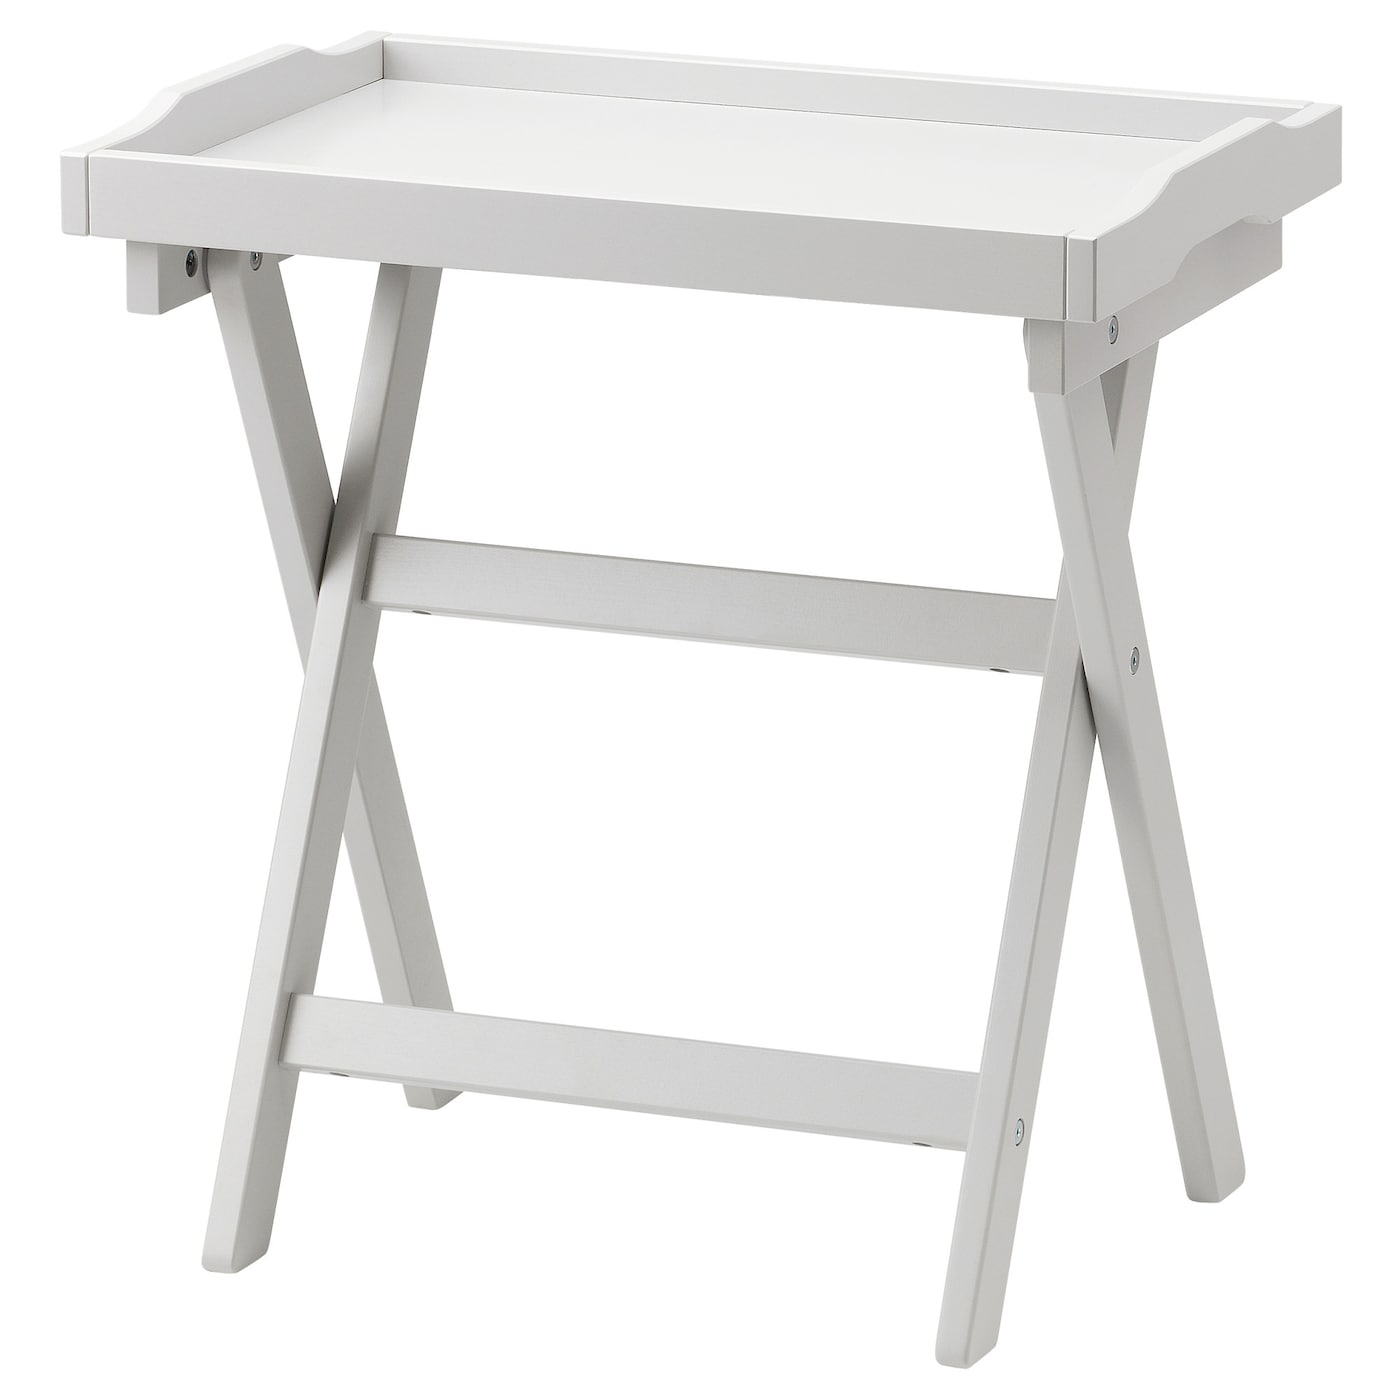 IKEA MARYD tray table You can fold the table to put it away when it is not needed.